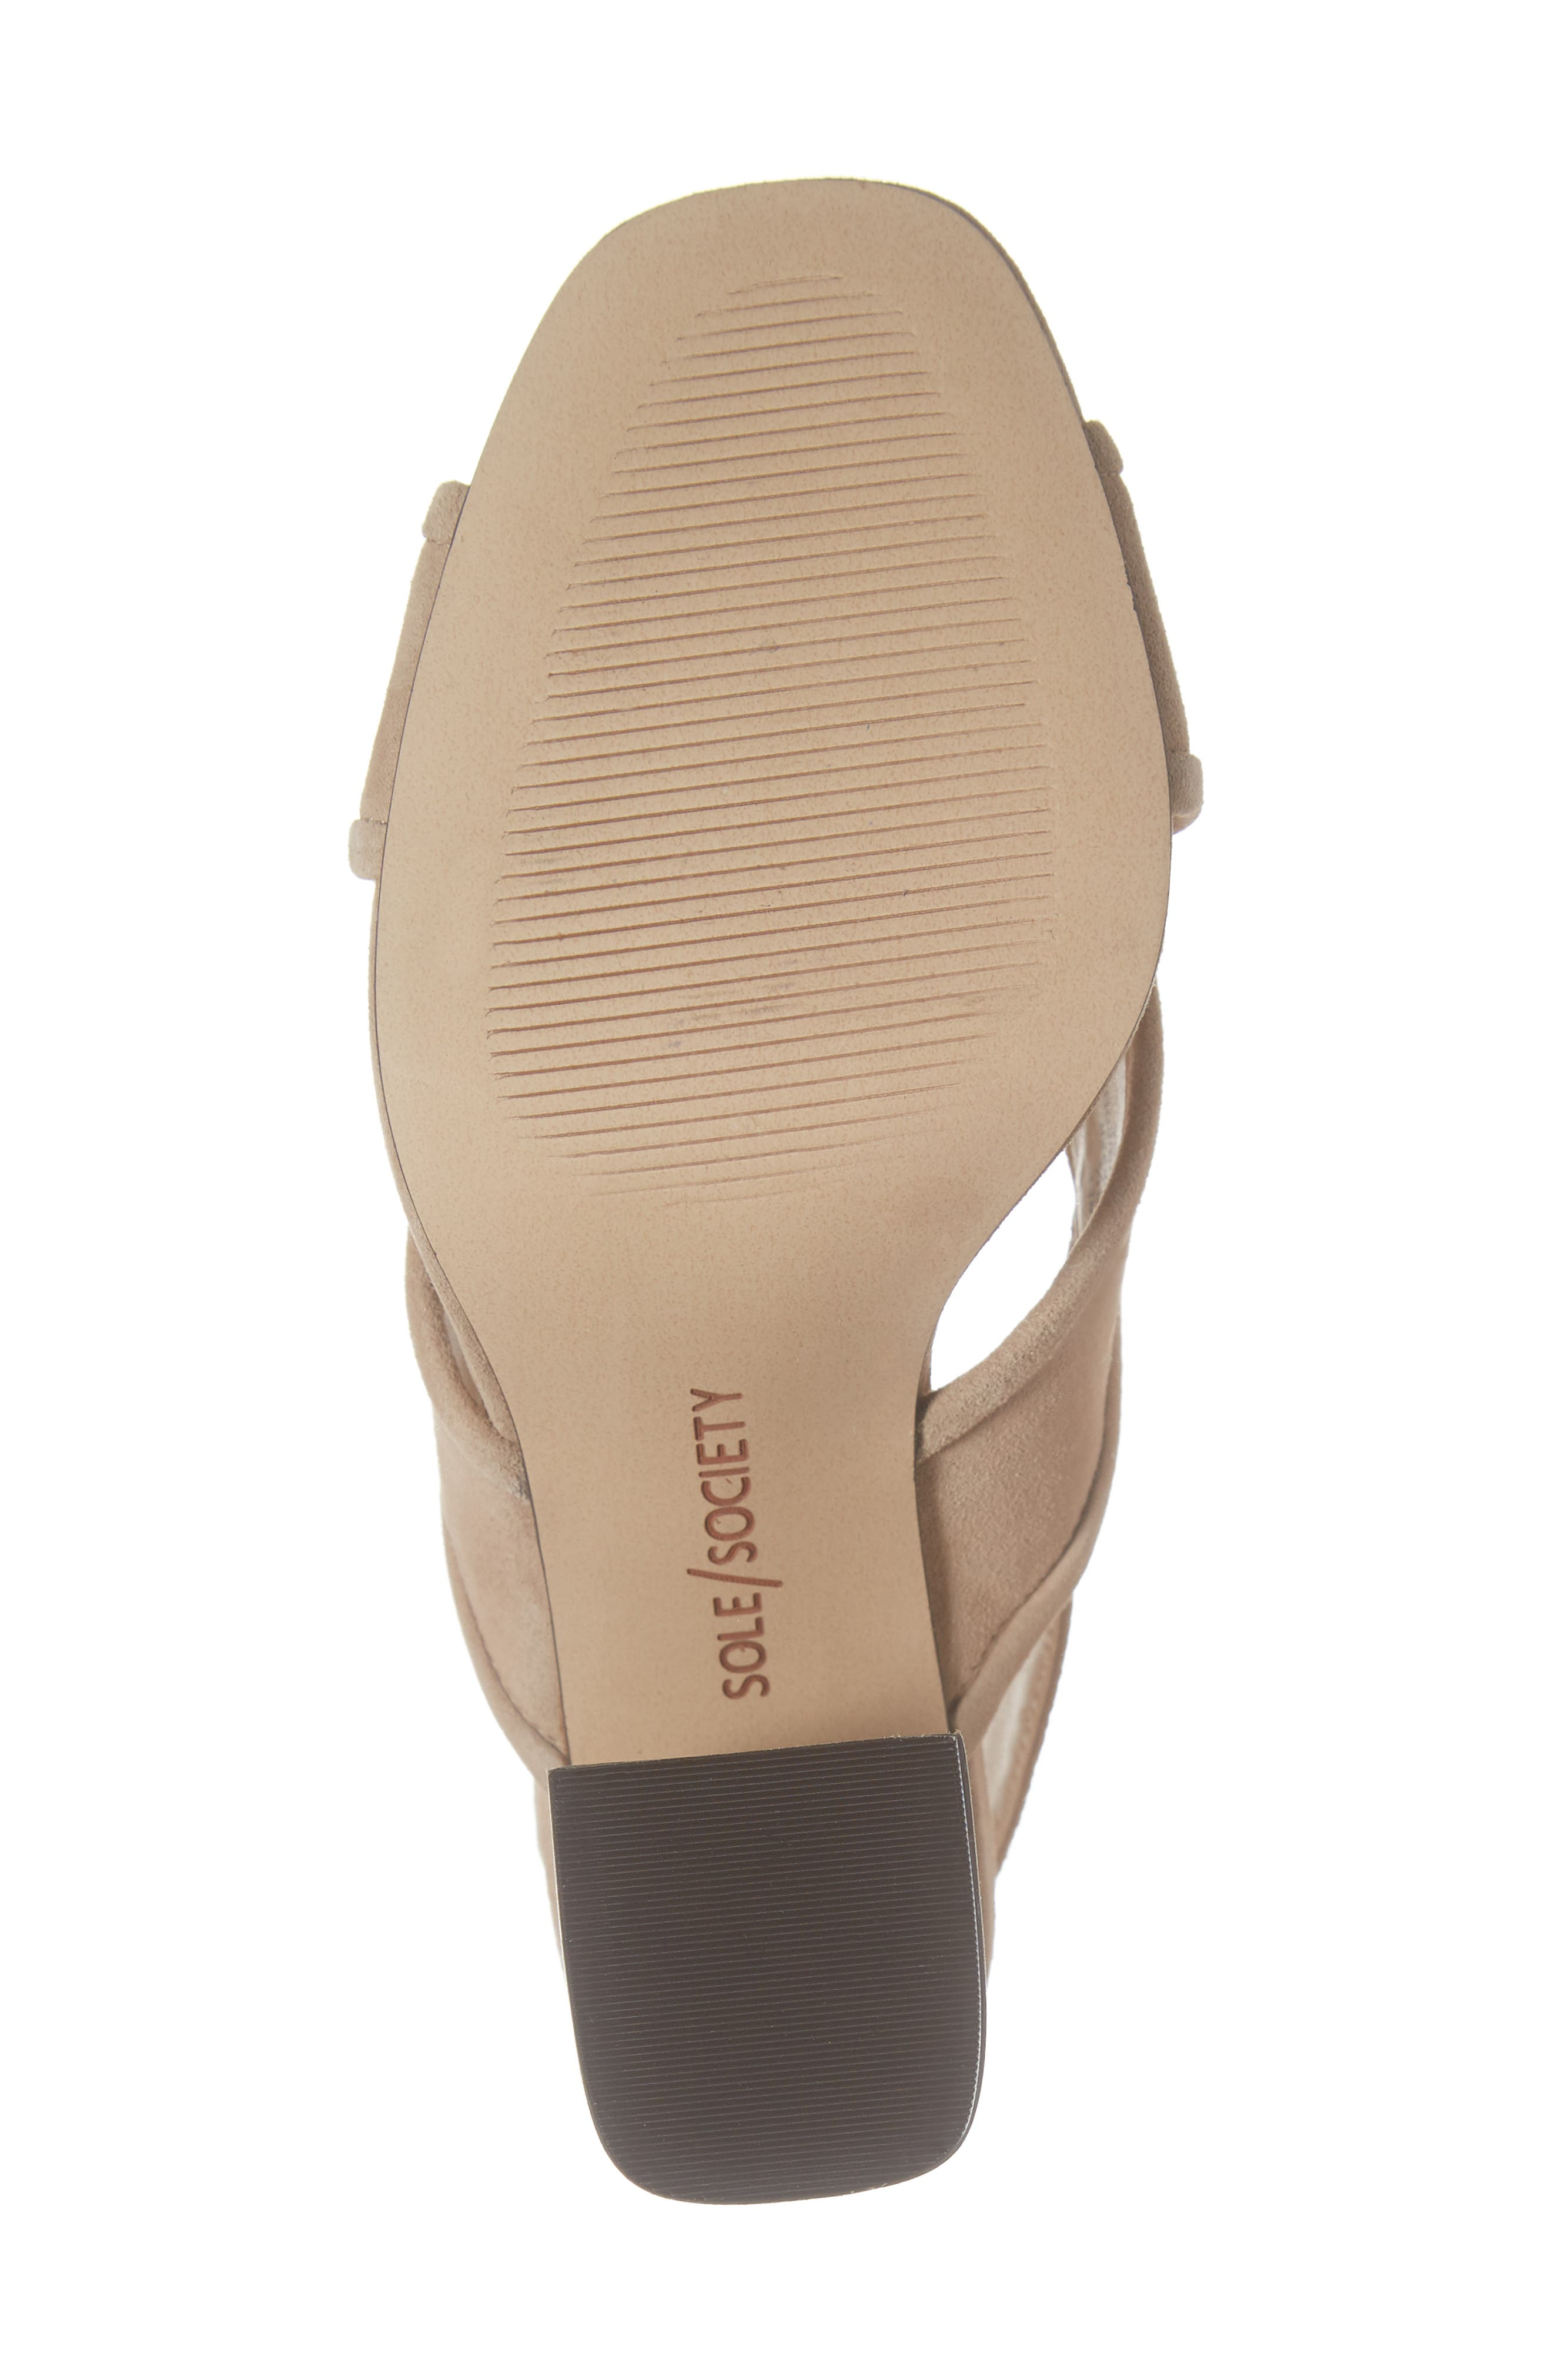 Joree Slingback Sandal,                             Alternate thumbnail 6, color,                             DUSTED TAUPE SUEDE